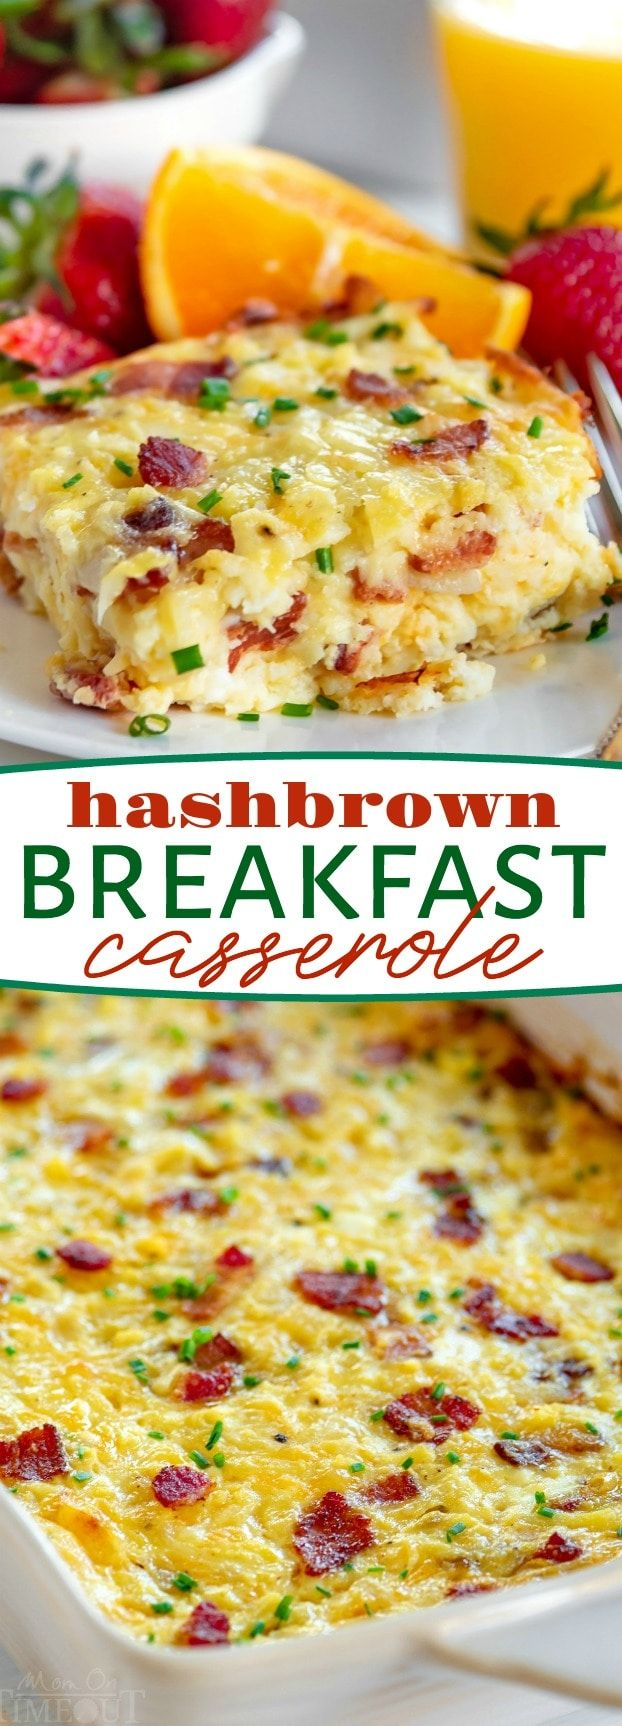 Easy Hashbrown Breakfast Casserole is perfect for entertaining a crowd or serving up a simple weekend brunch Made with frozen hashbrowns eggs bacon and three different ty...